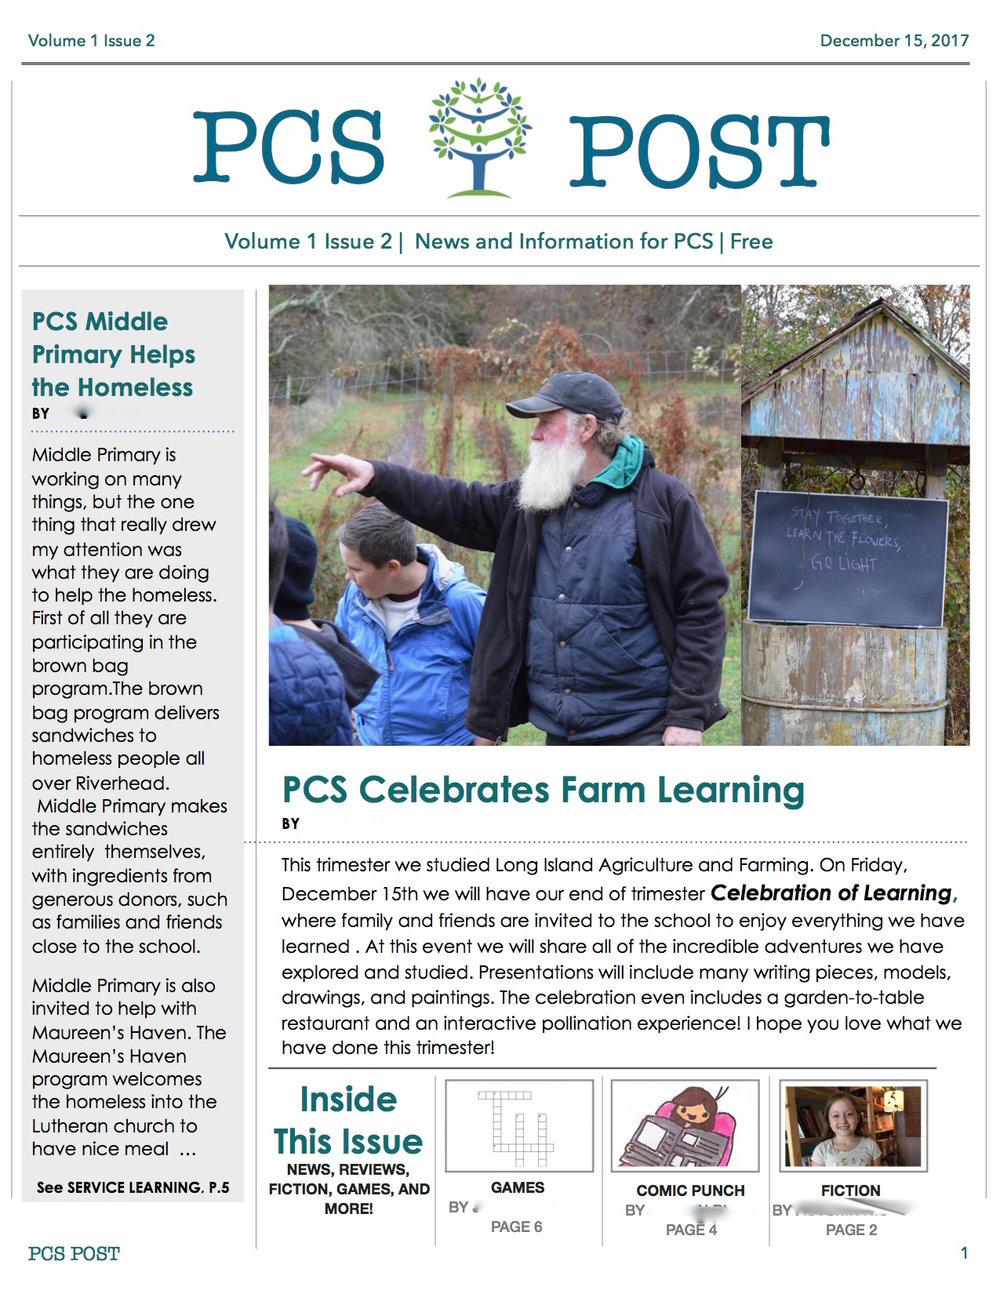 PCS Post Issue 2 Page 1 JPEG.jpg